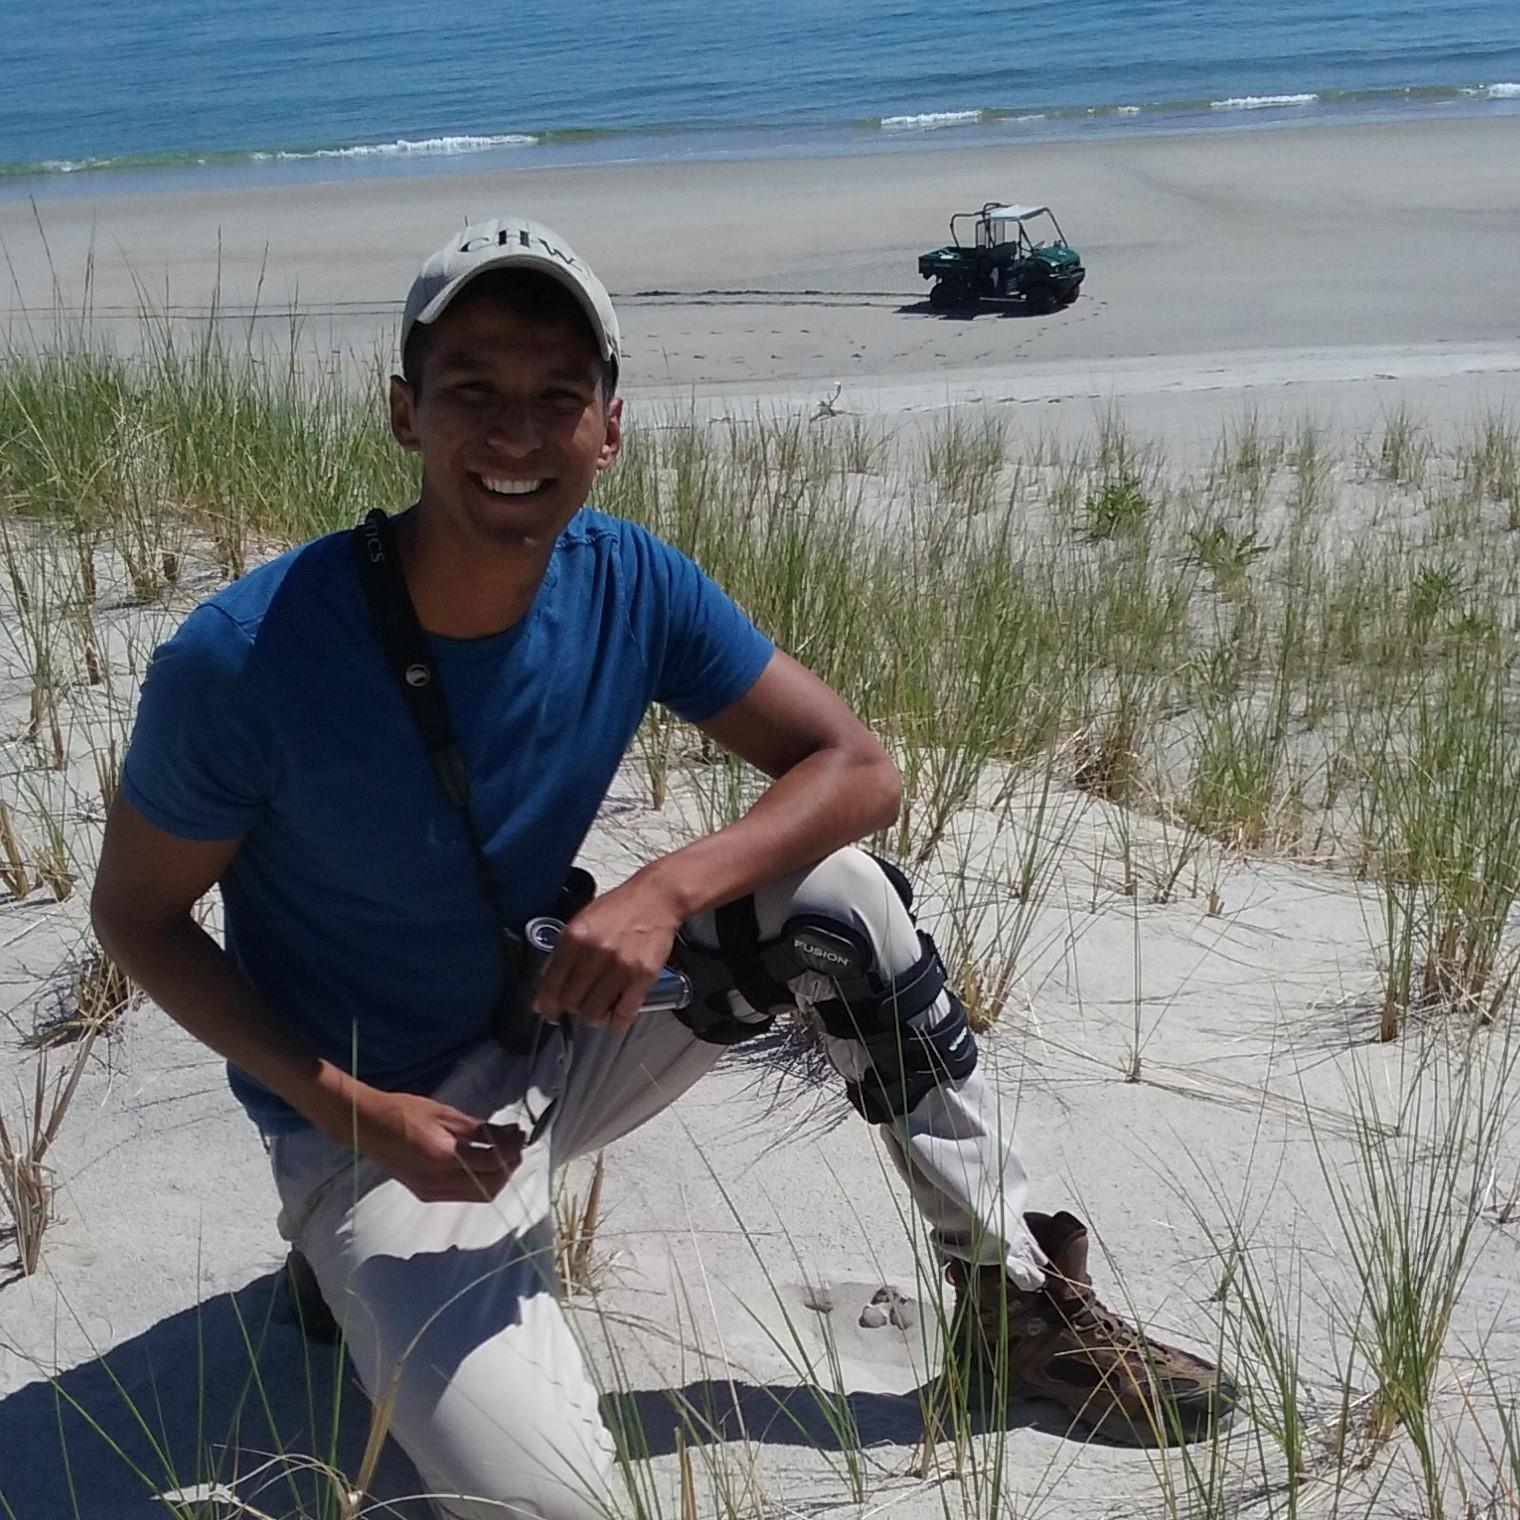 Erik next to a piping plover nest during field surveys at Crane Beach in Ipswich, MA. Photo courtesy of Erik Martinez